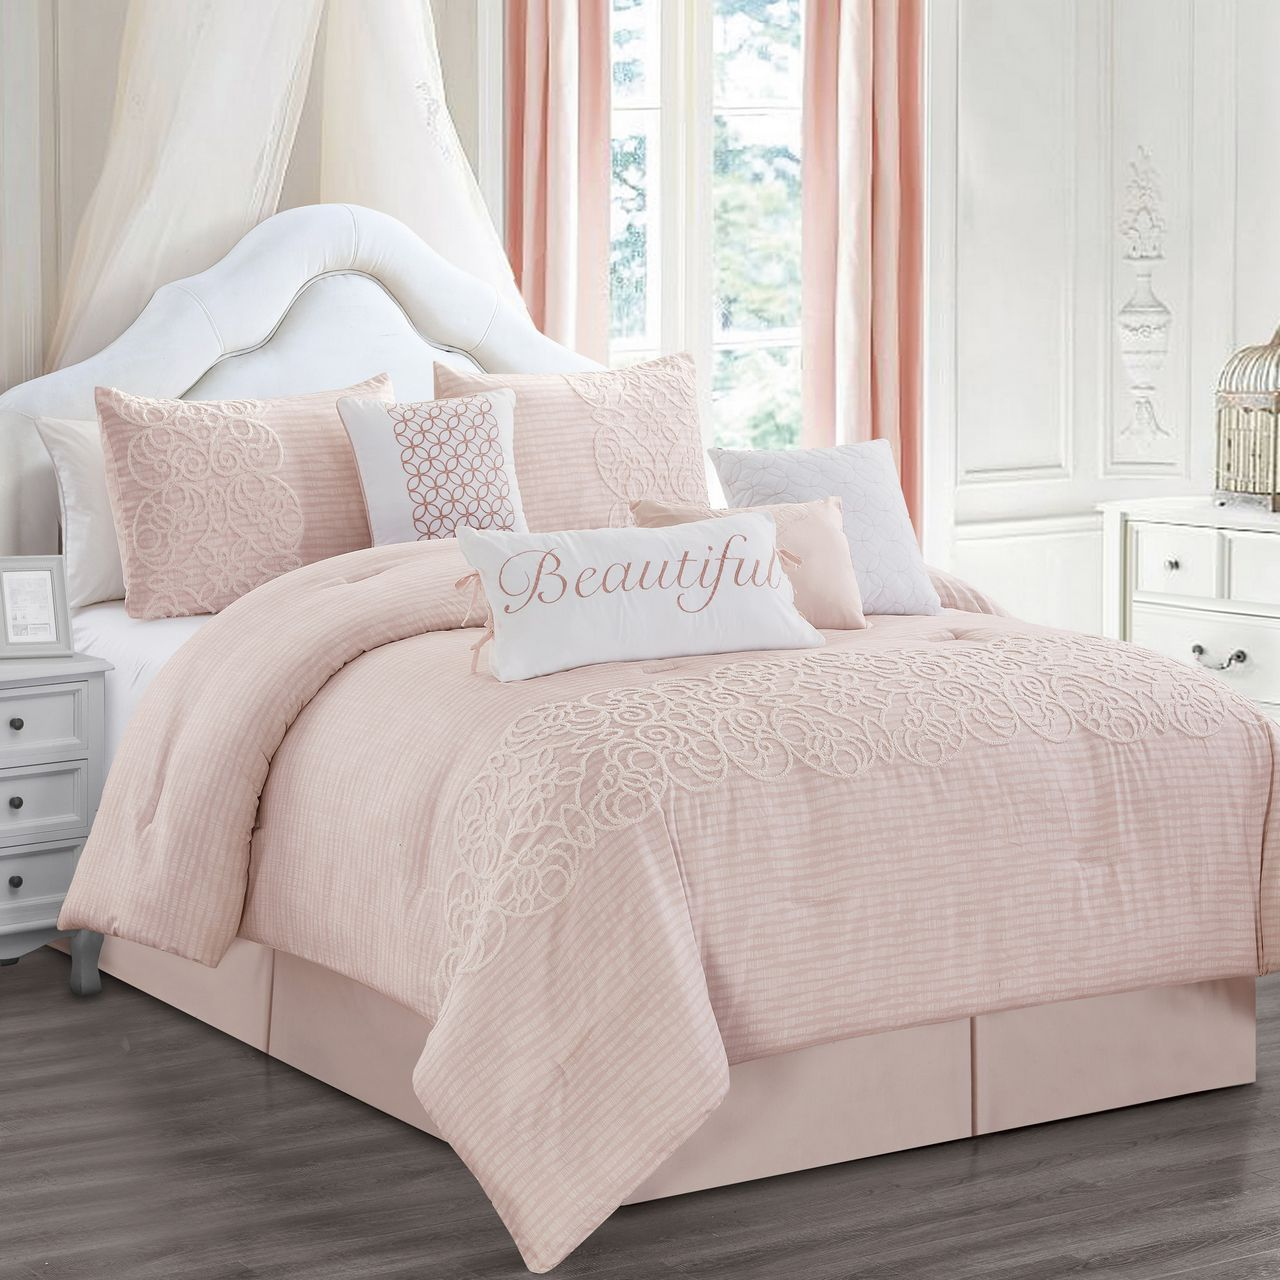 Home In 2020 Bedroom Comforter Sets Luxury Comforter Sets